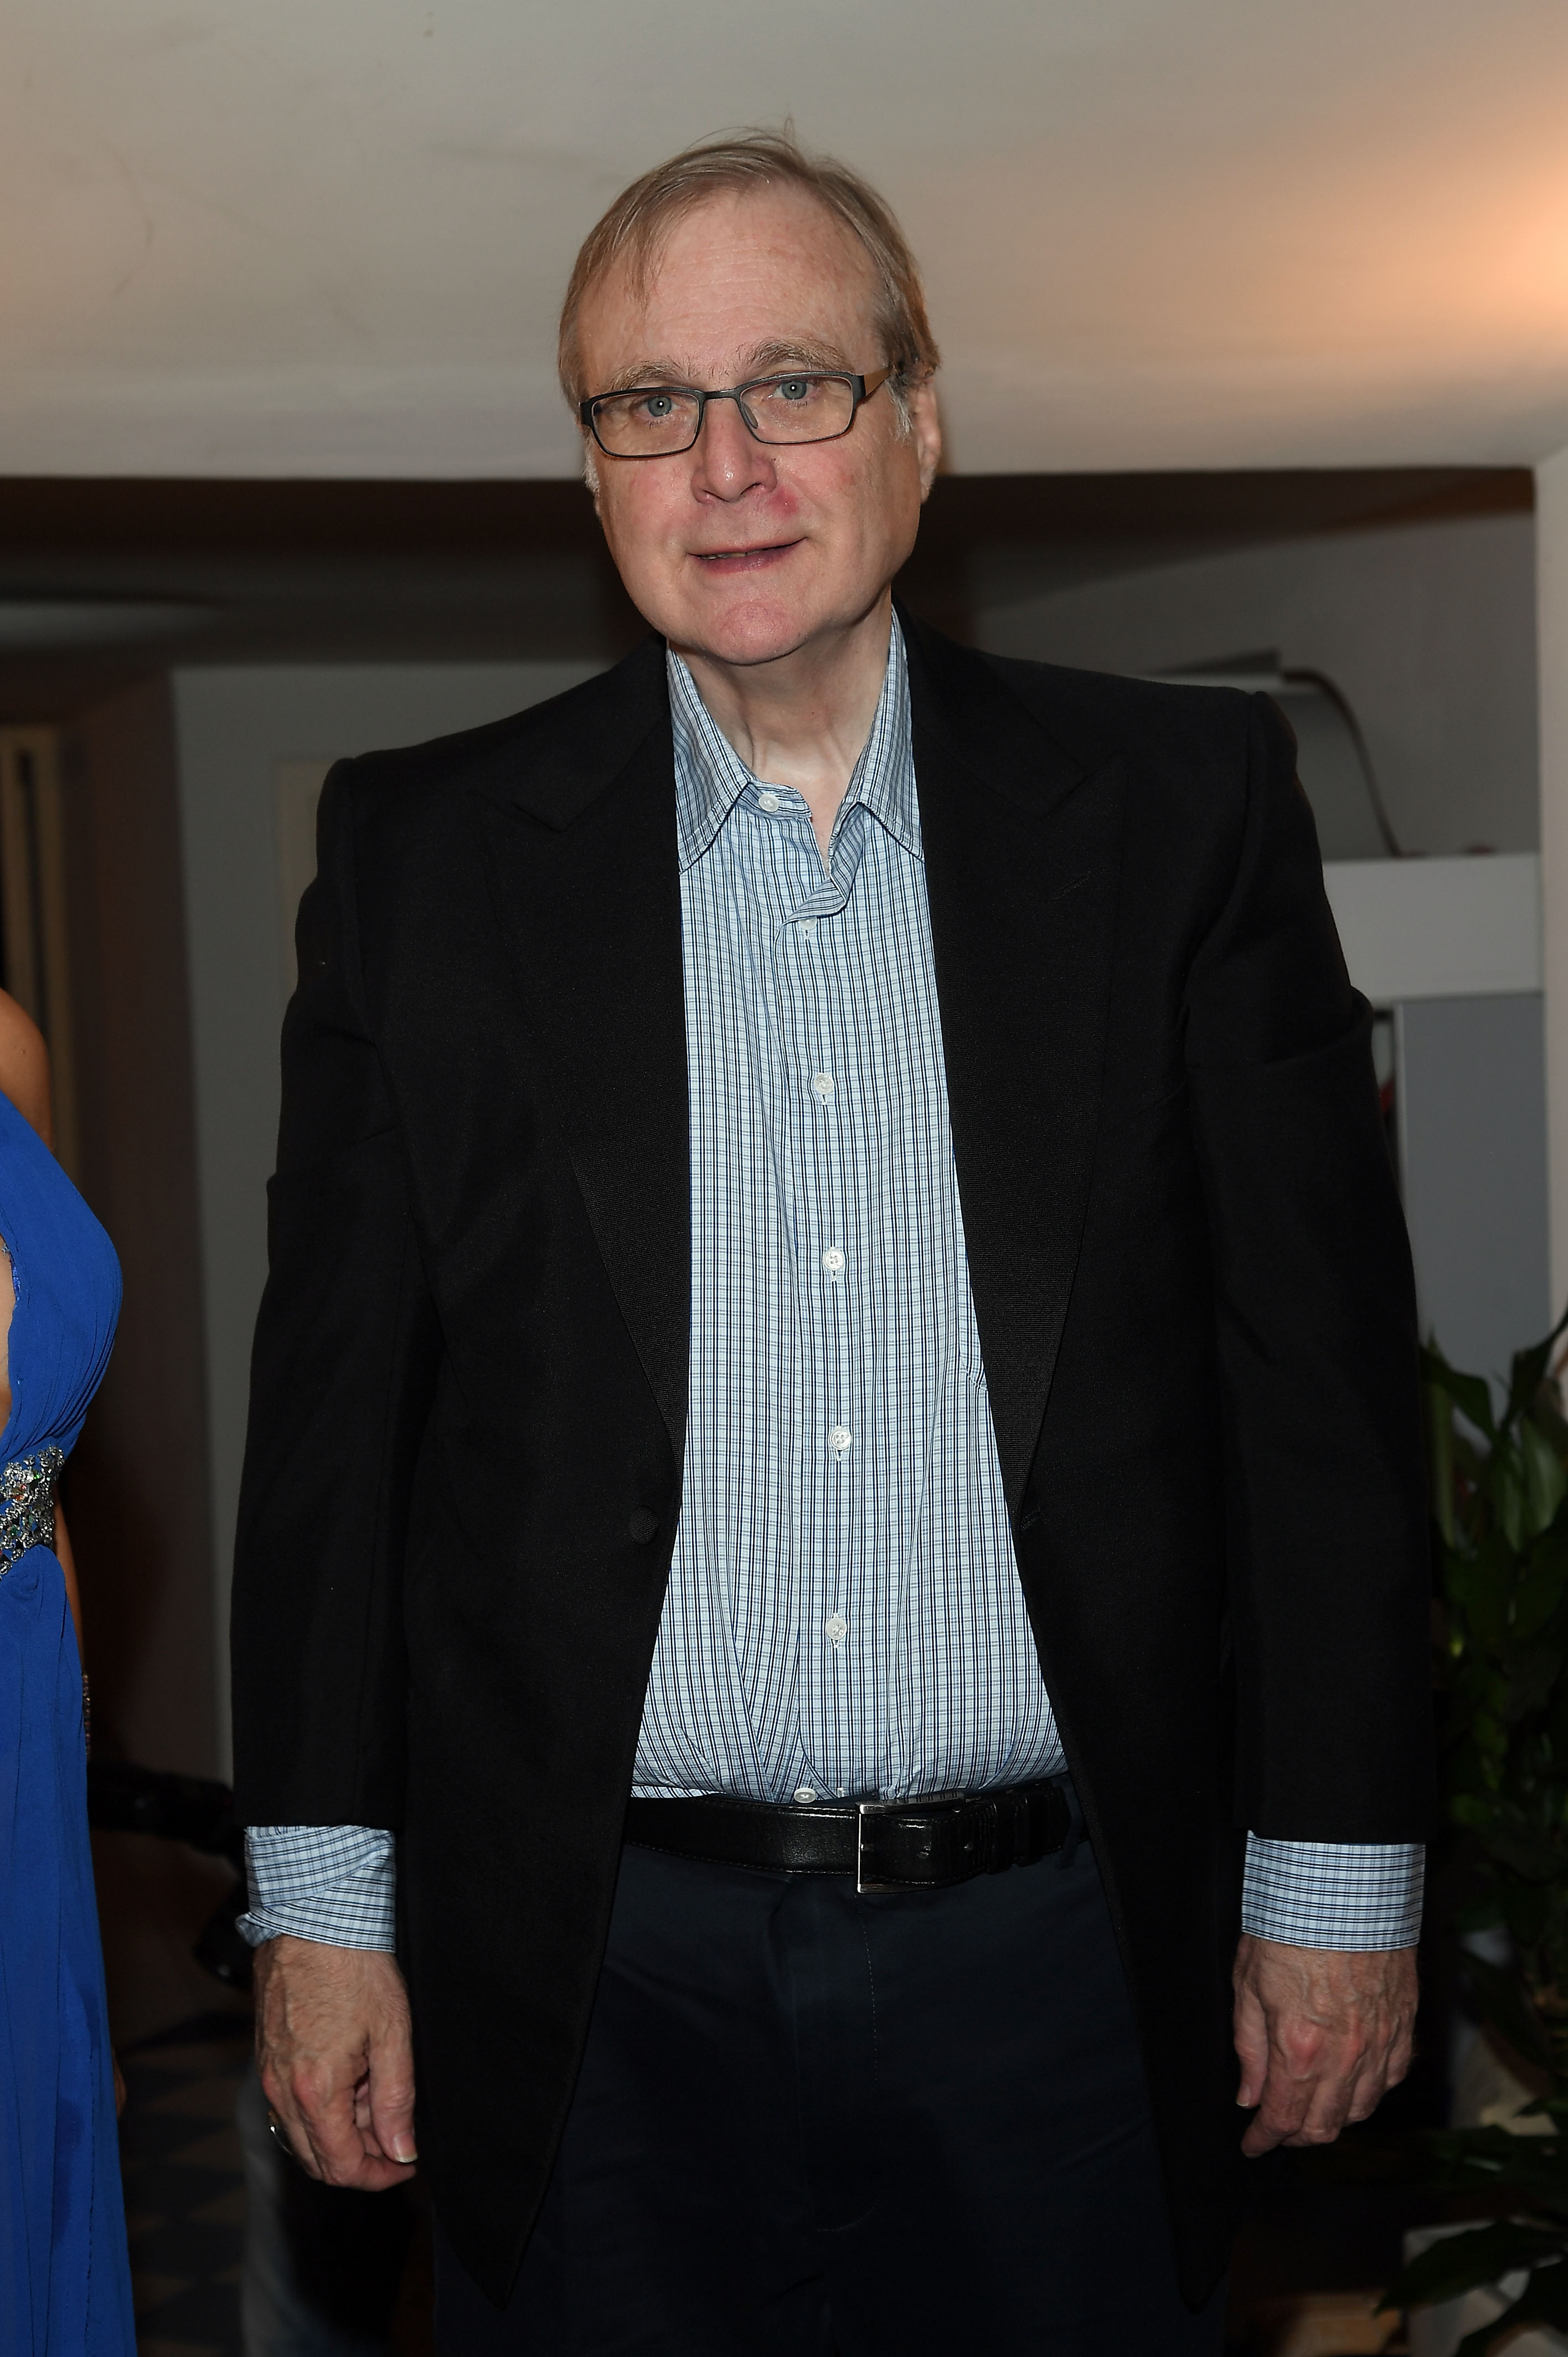 Paul Allen Microsoft Co-Founder Quincy Jones Musician